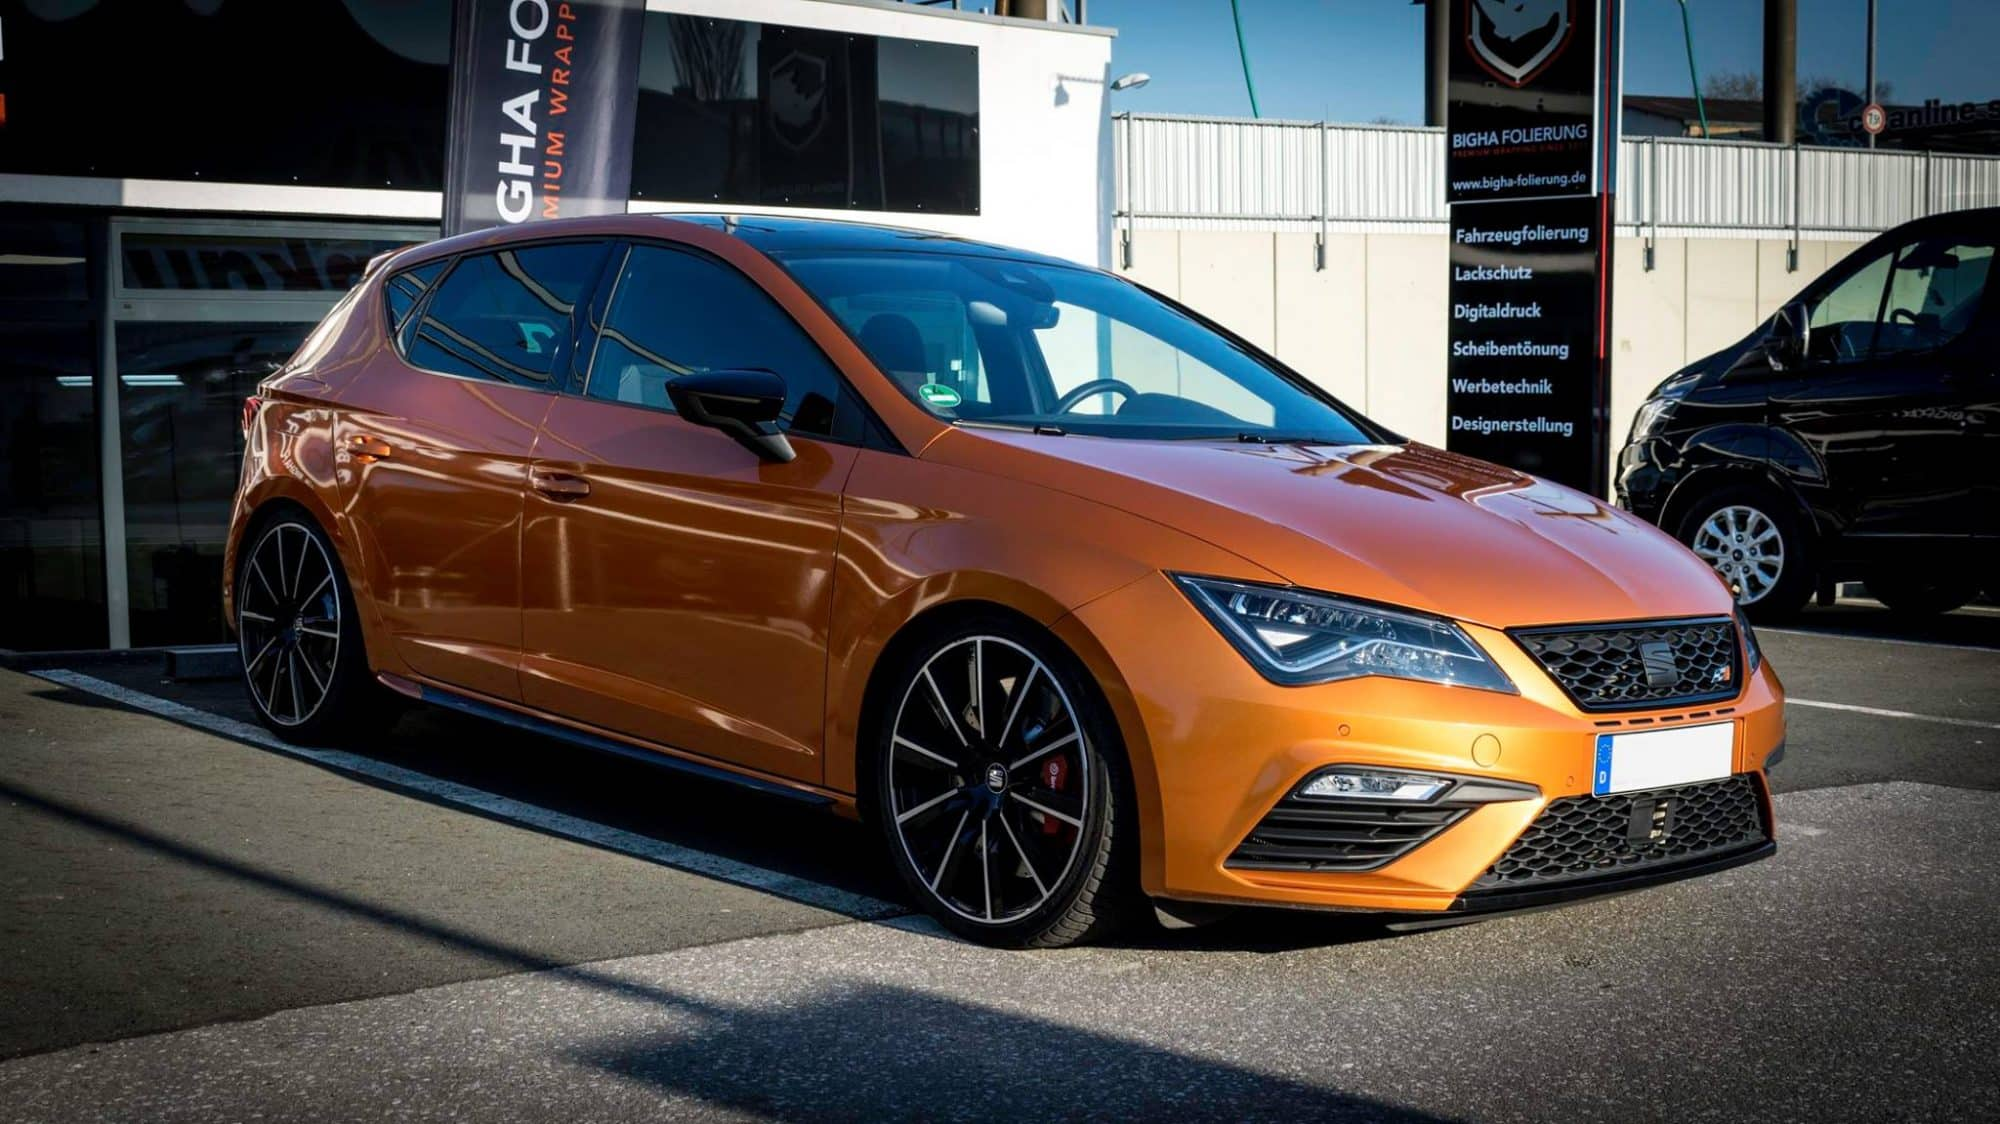 Seat leon Folierung 3M Liquid Copper